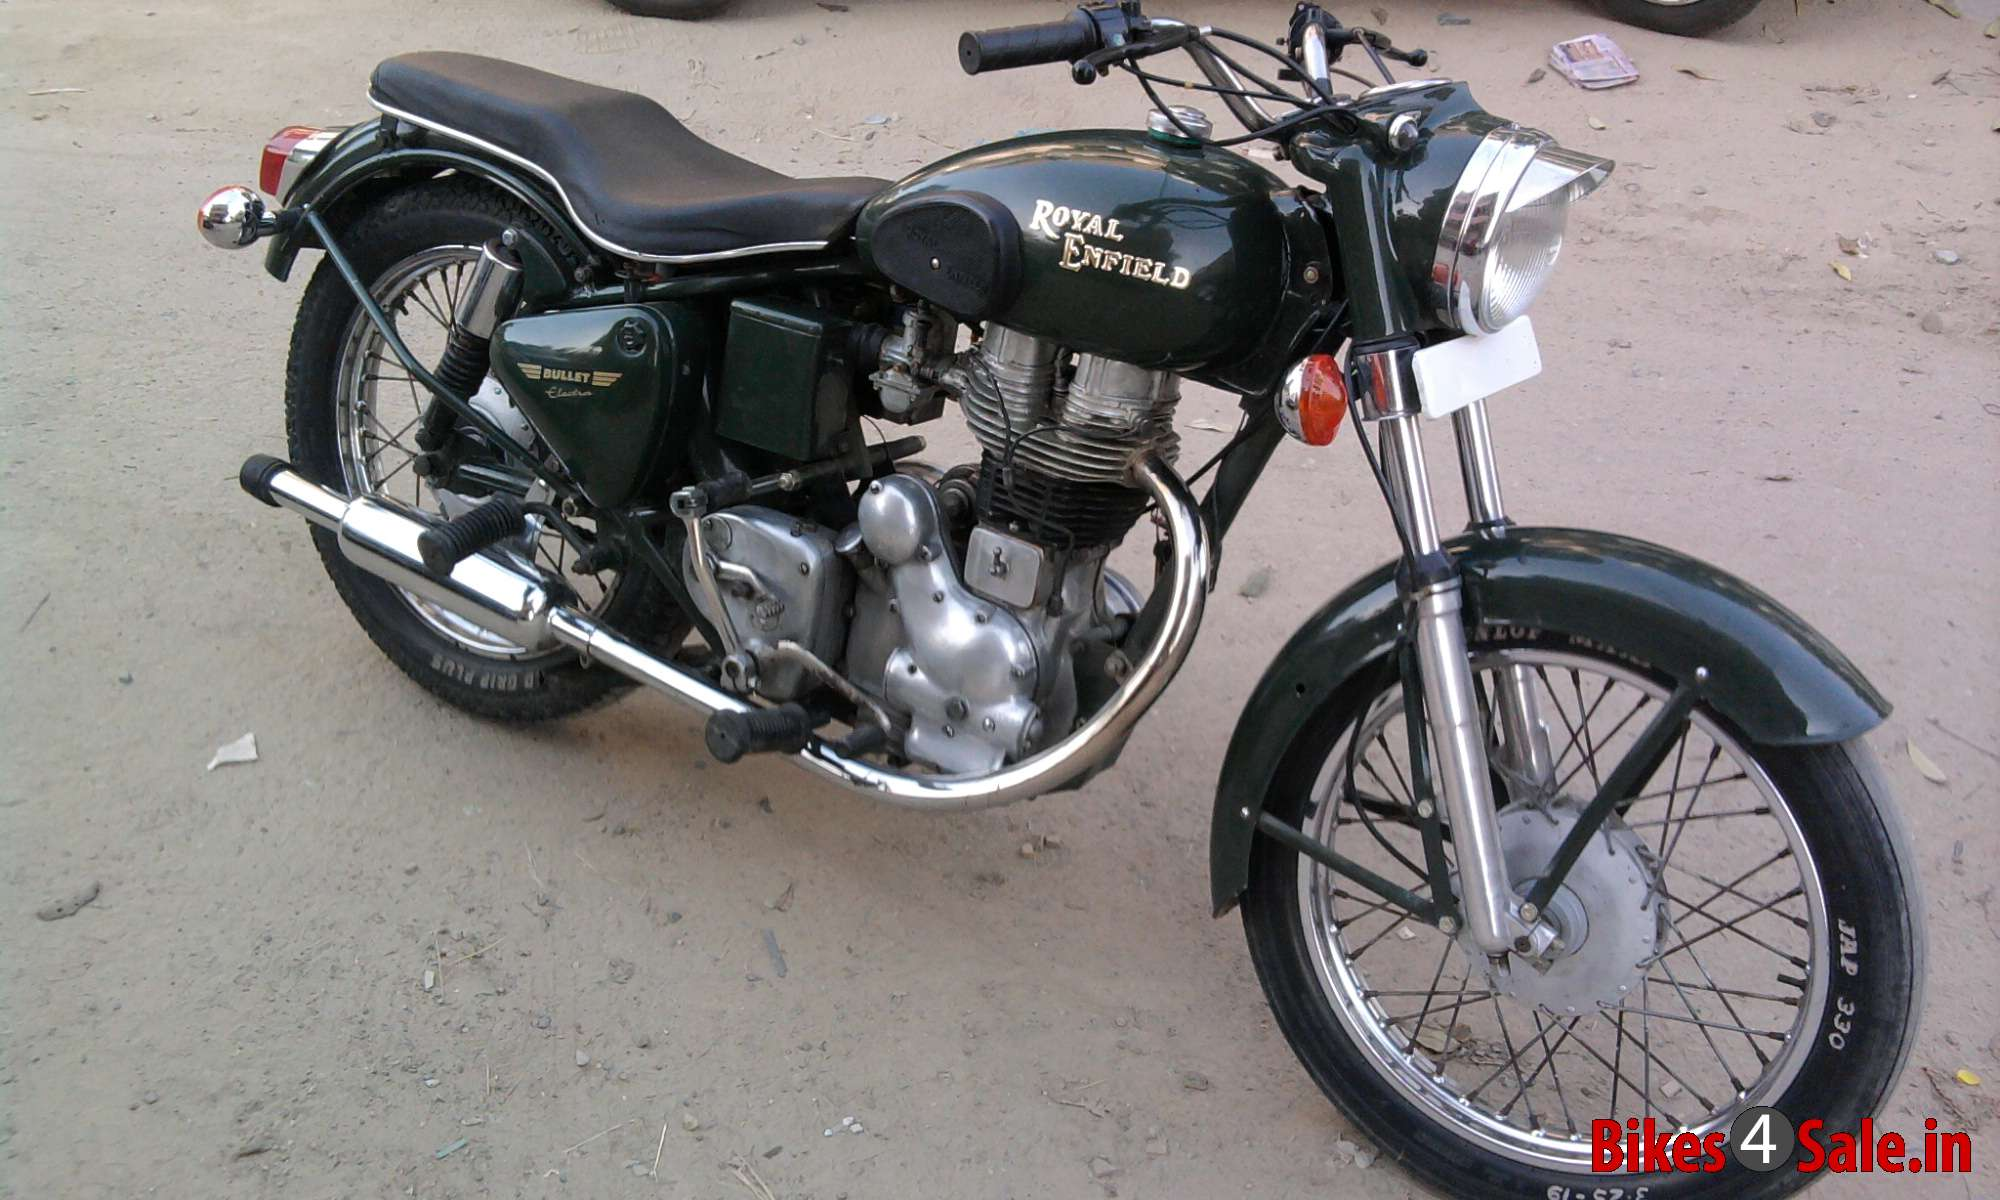 Royal Enfield Bullet 350 Army images #122435